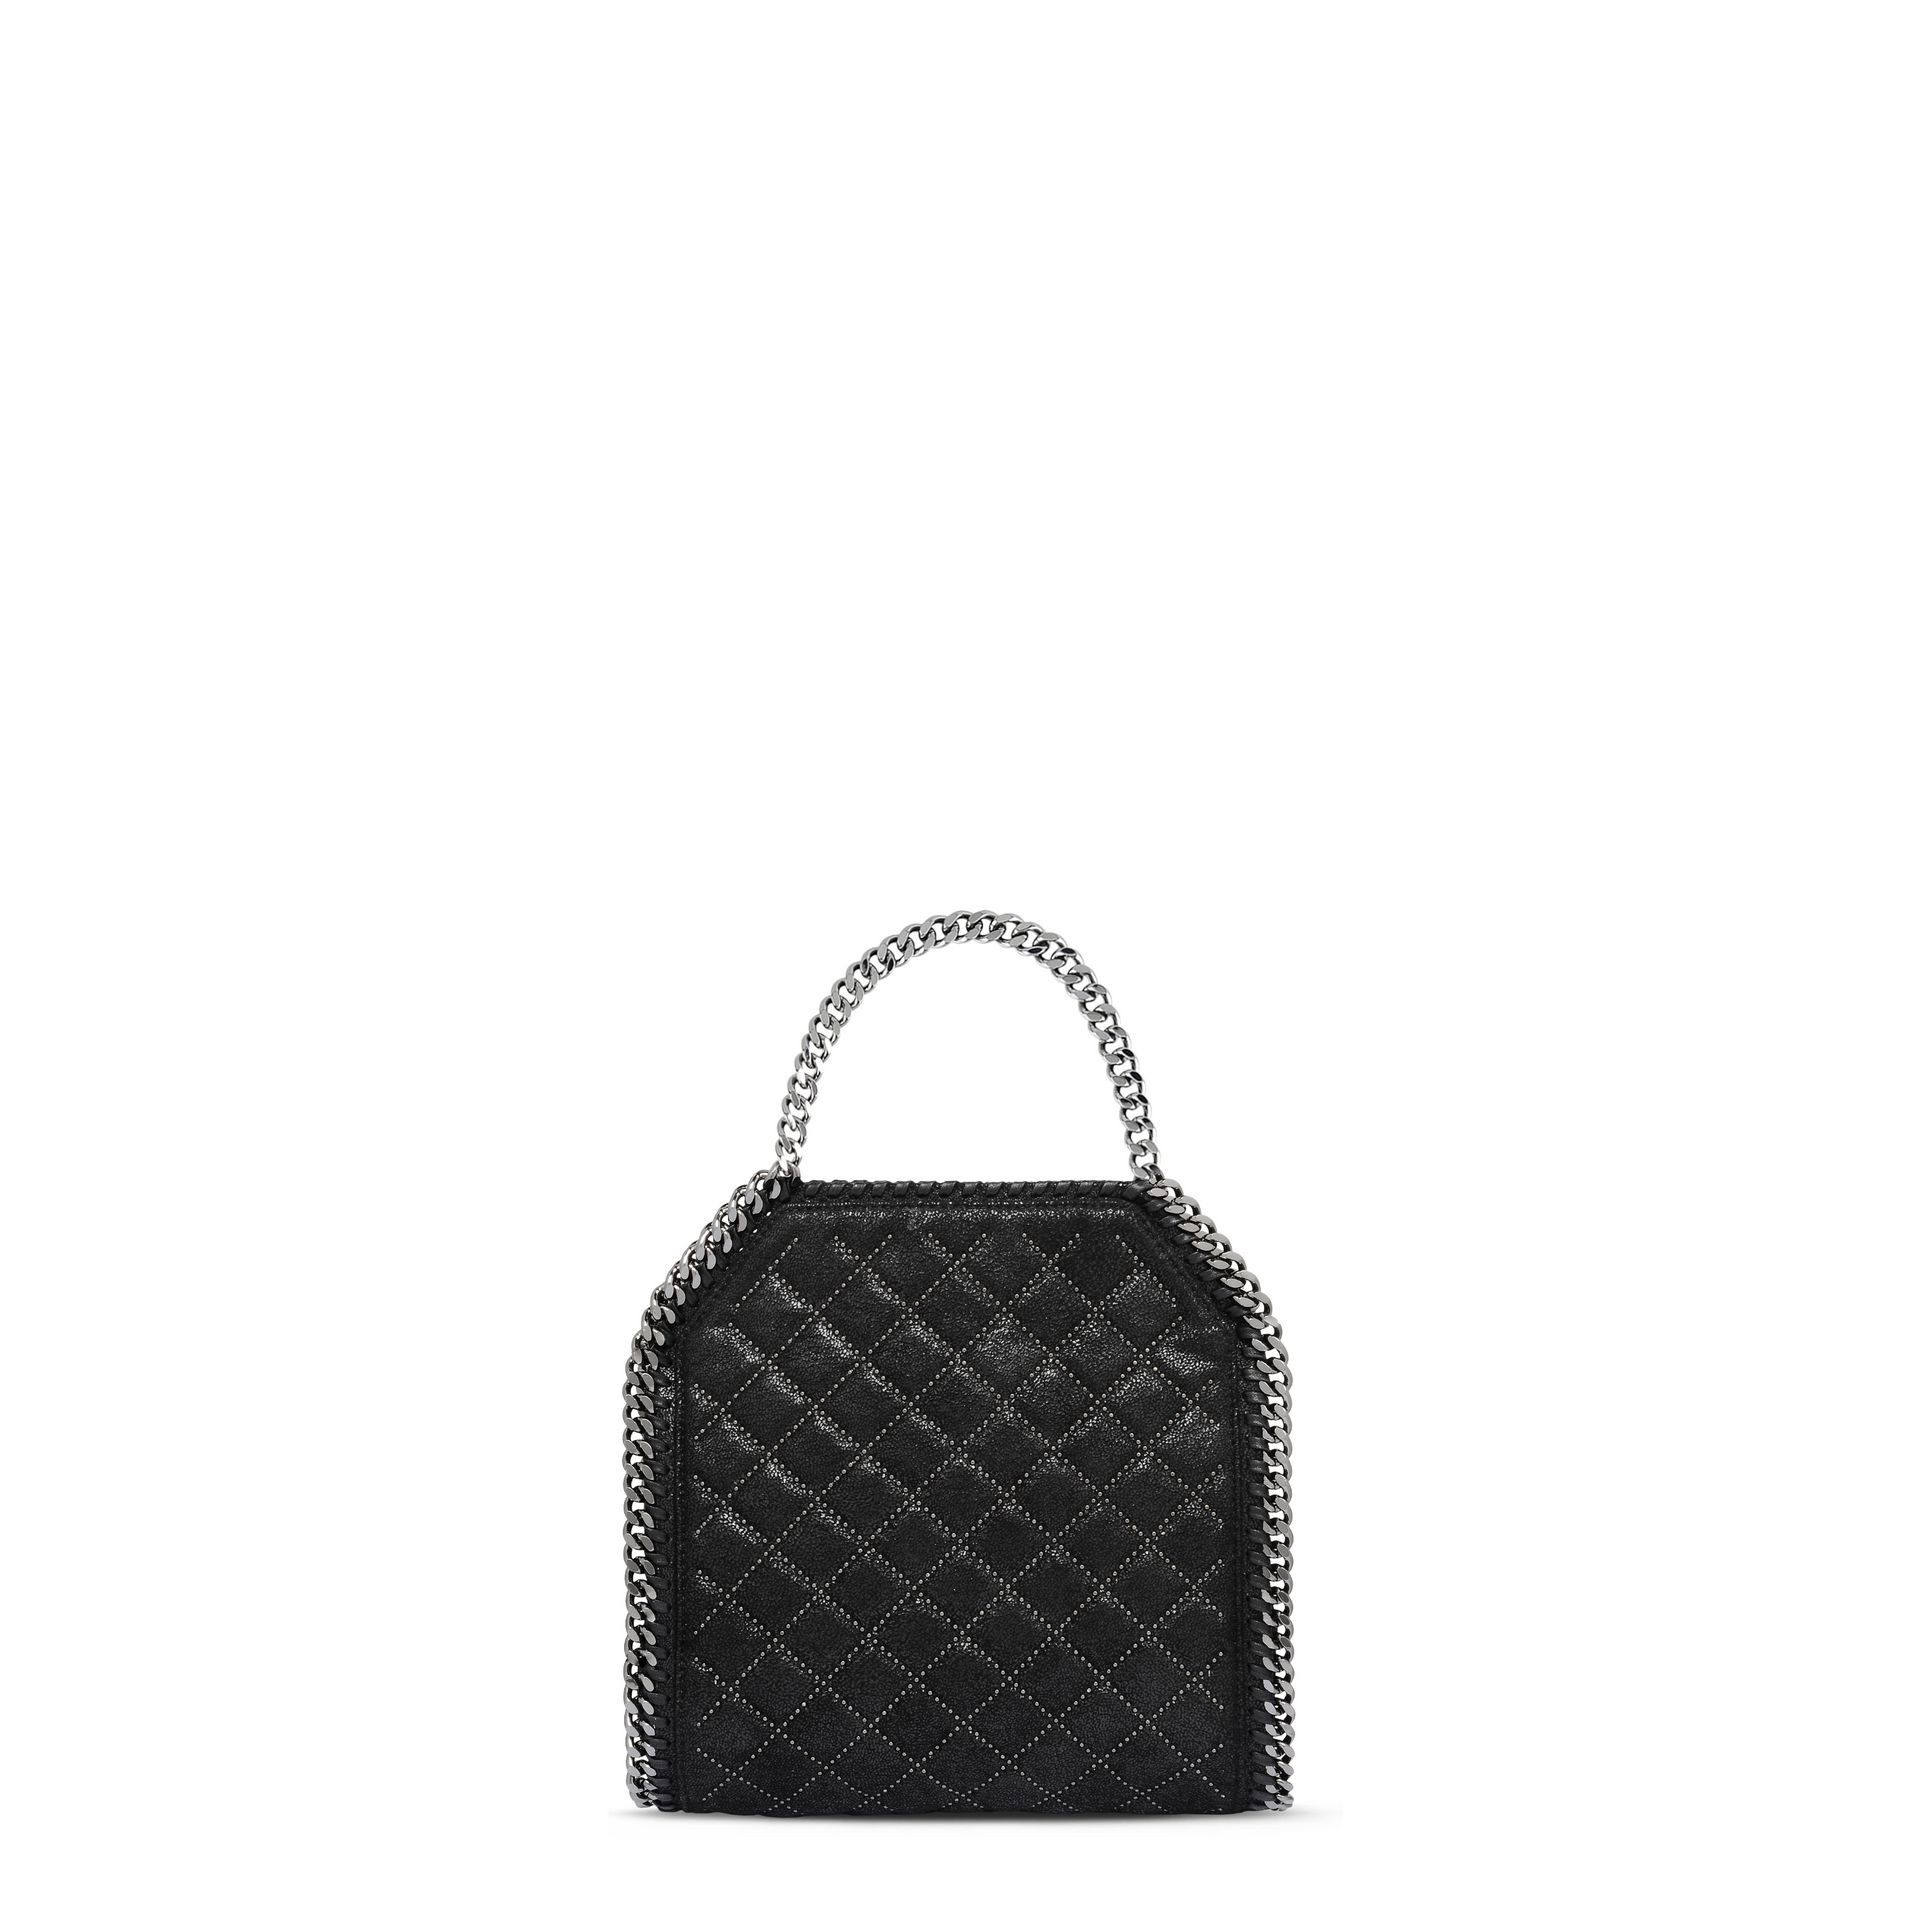 8571227ab7 Stella McCartney Black Falabella Studded Quilted Shaggy Deer Mini Tote in  Black - Lyst